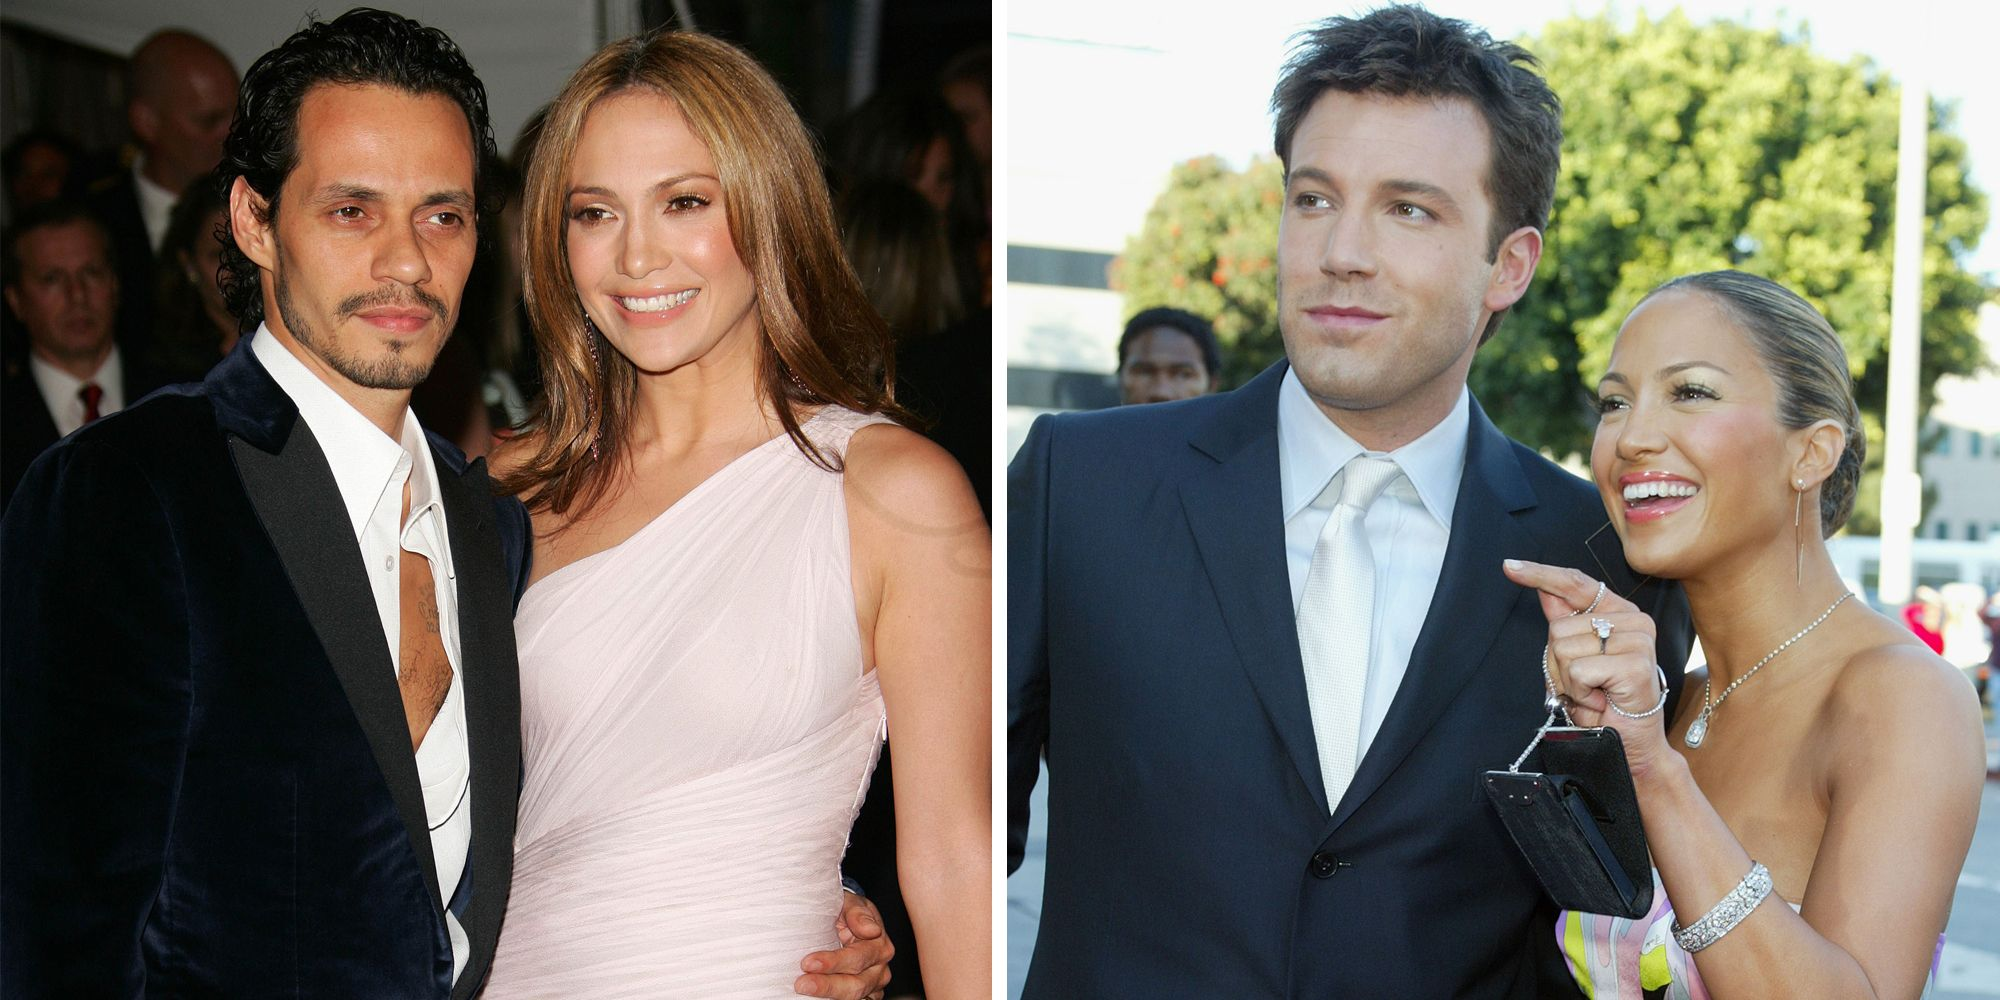 jennifer-lopez-and-ben-affleck-heres-how-her-ex-marc-anthony-feels-about-their-reunion